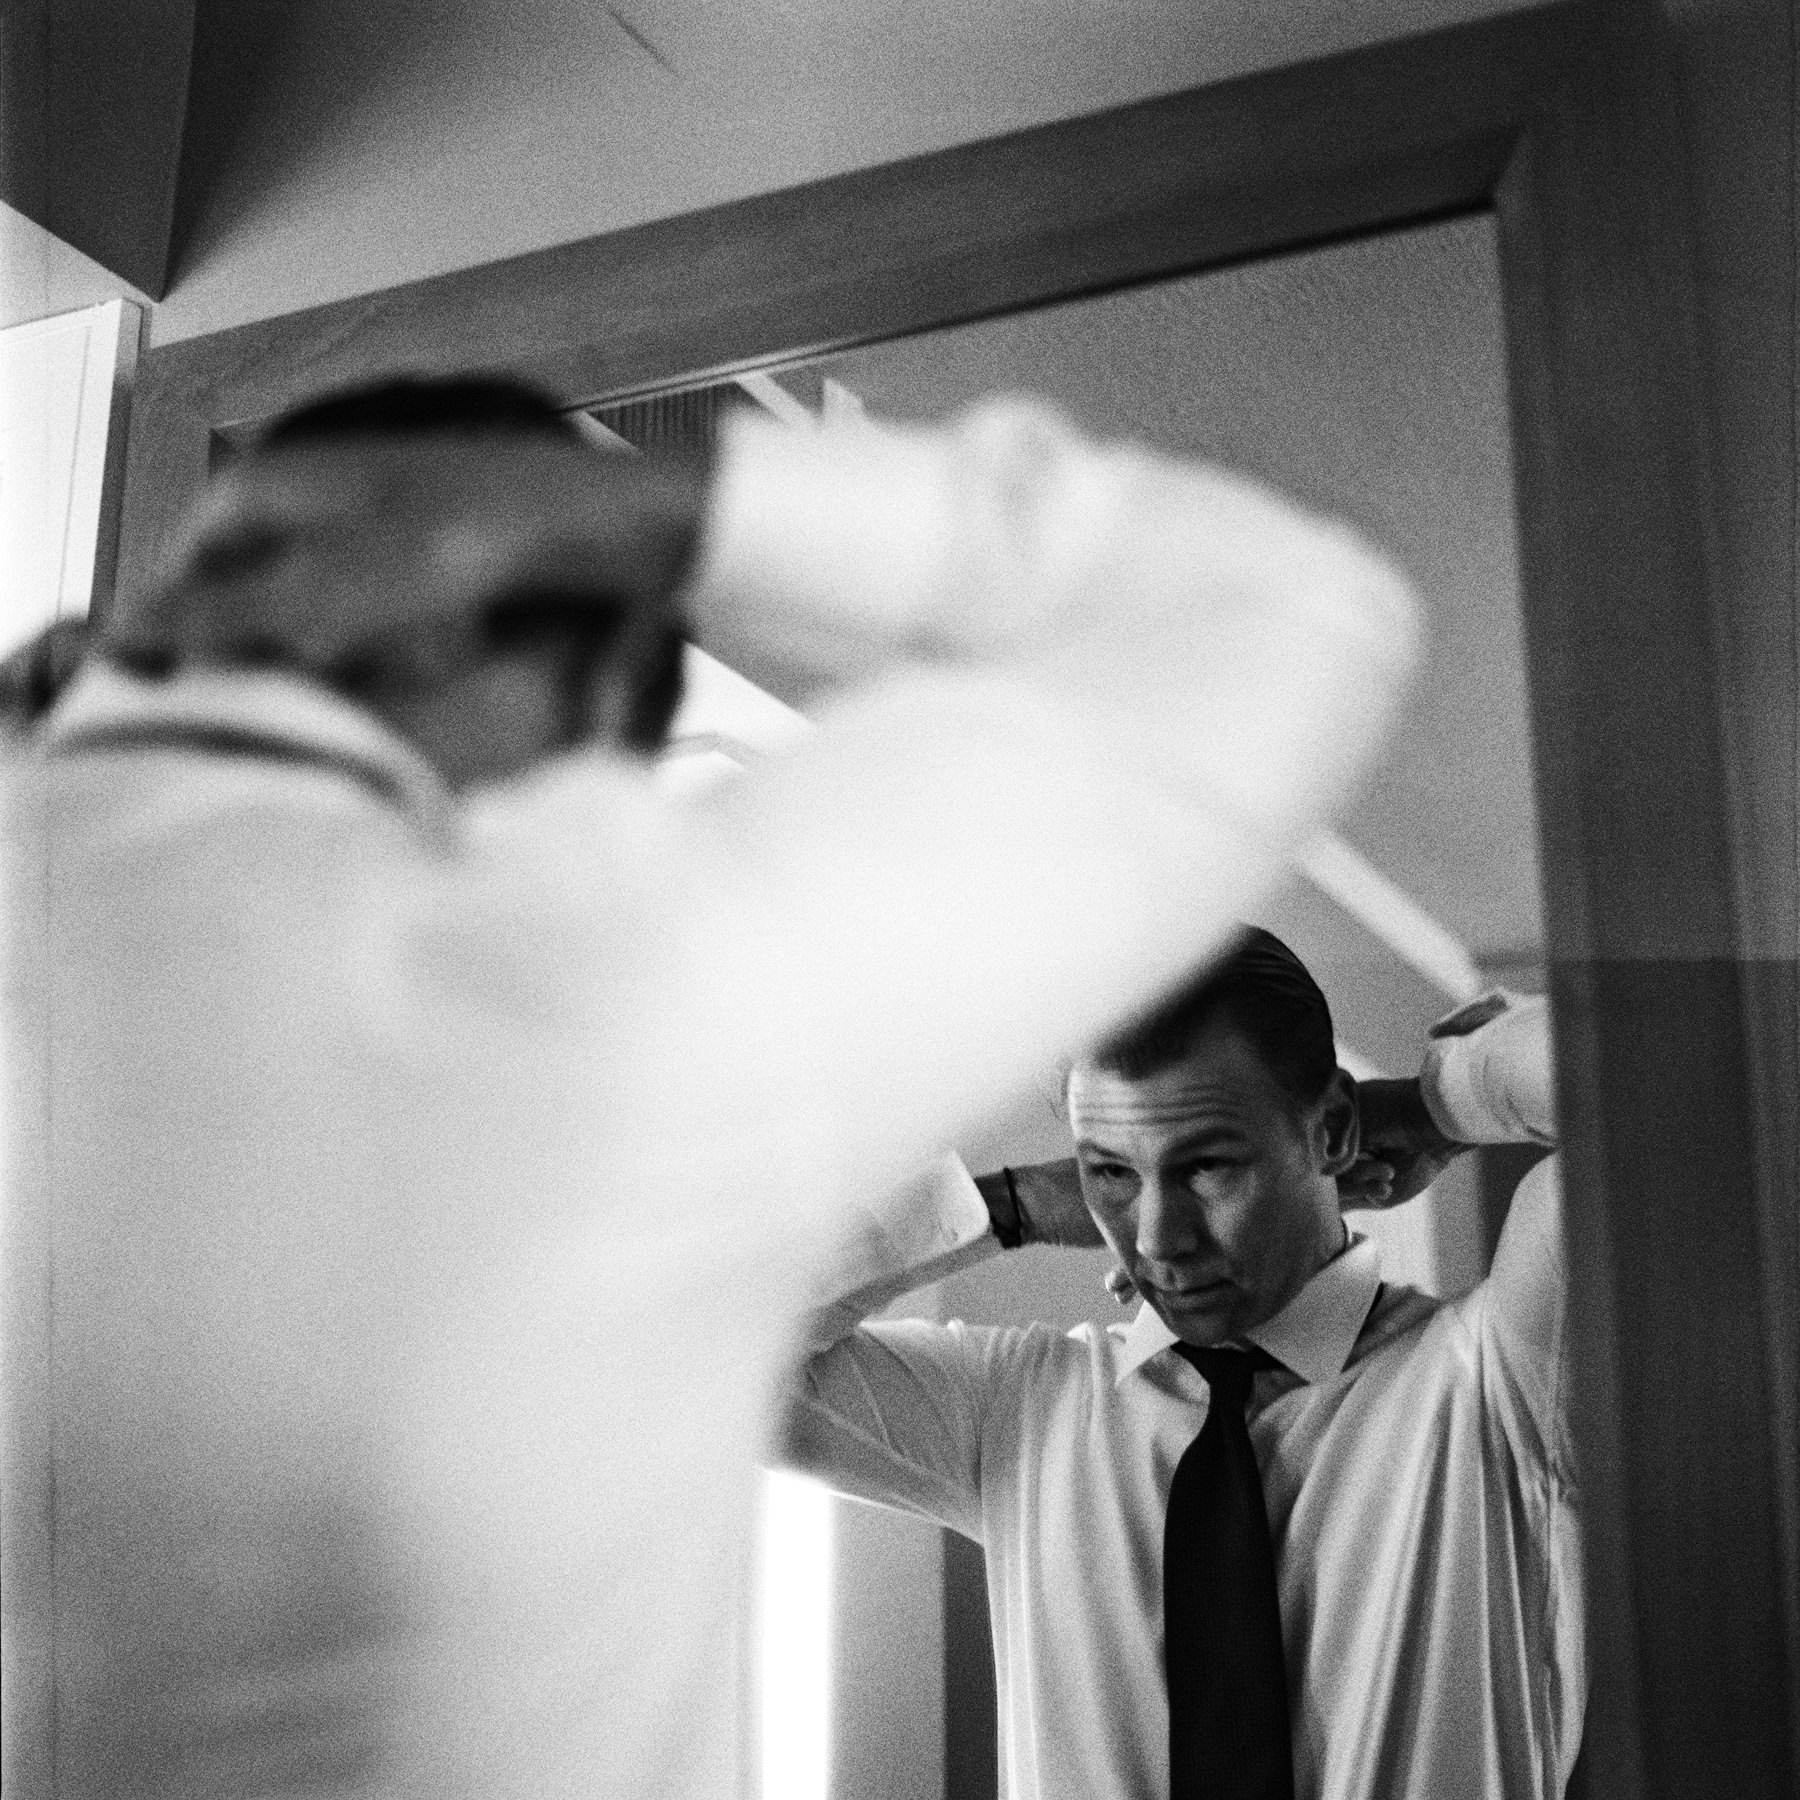 168-groom-finishing-his-tie-and-opening-a-wedding-gift-in-downtown-seattle.jpg